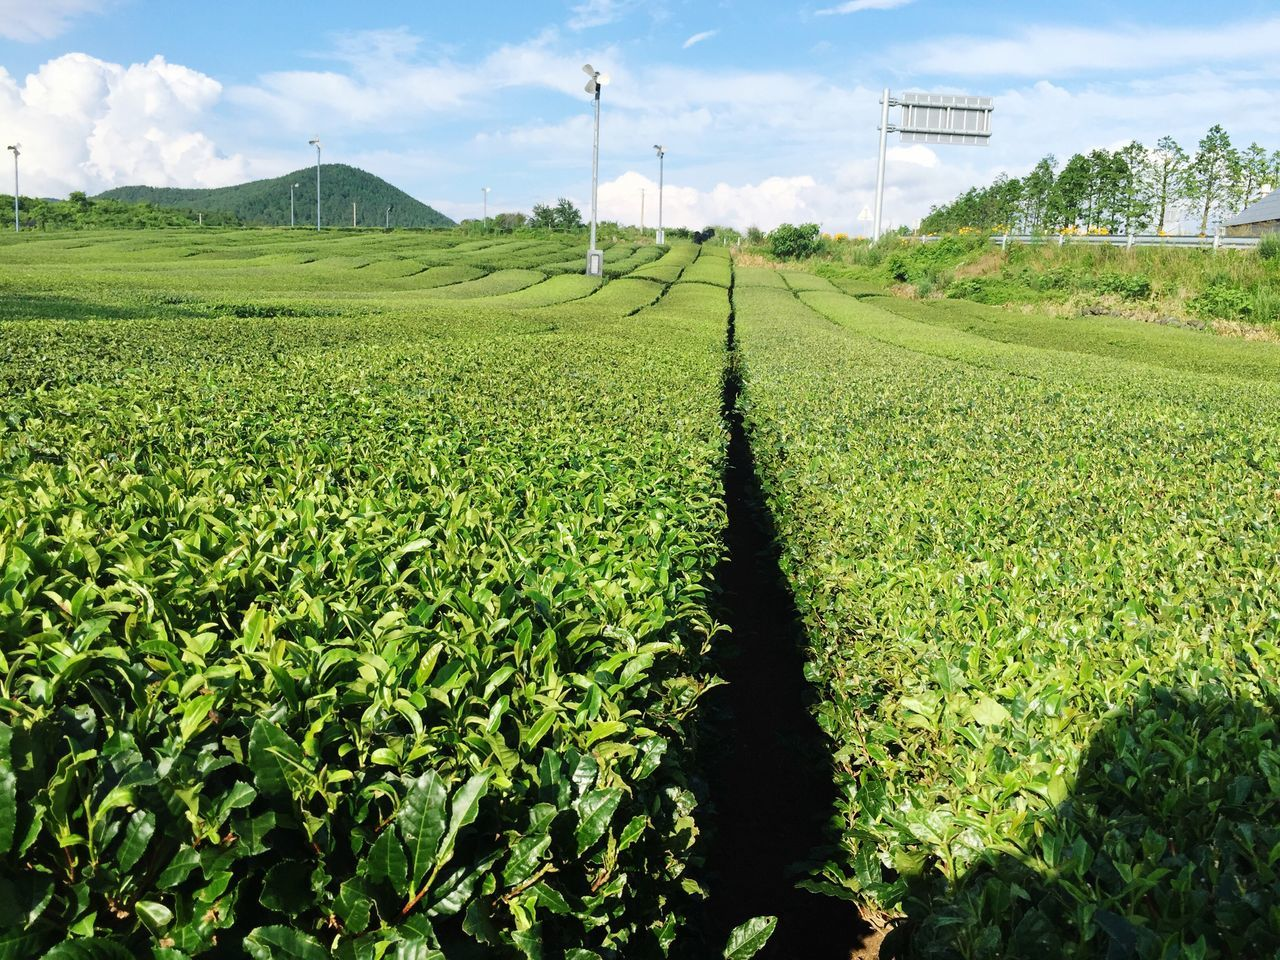 Rural Scene Agriculture Field Landscape Sky Farm Growth Scenics Green Color Green Tea Osulloc Korea JEJU ISLAND  Nature Plant Beauty In Nature Tranquil Scene Cultivated Land Alternative Energy Cloud Renewable Energy Tranquility Wind Turbine Beautifully Organized